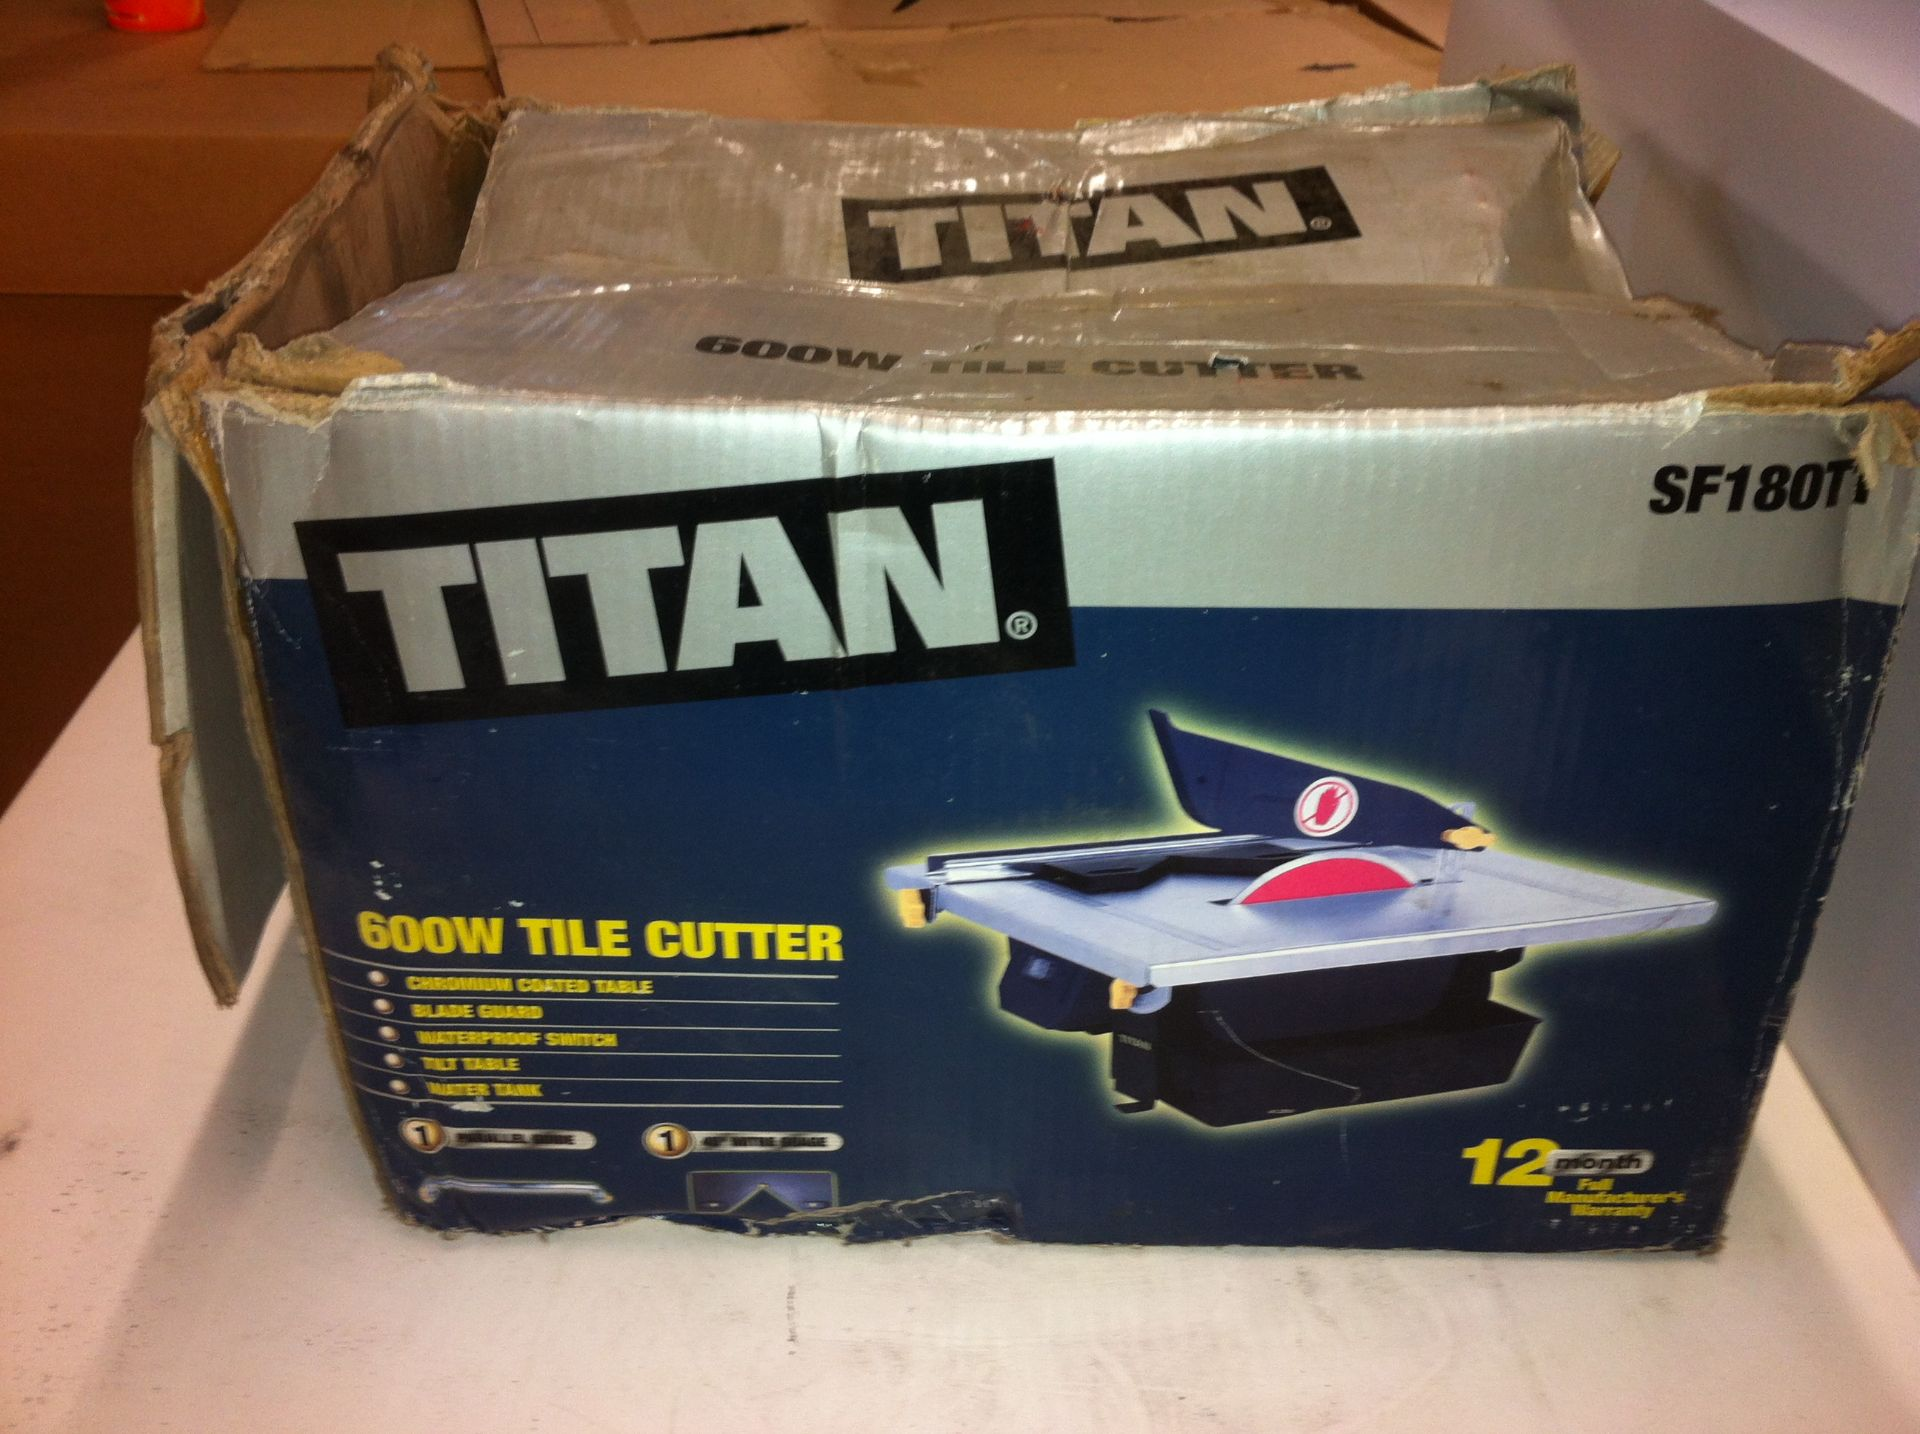 Lot 130 - Titan Tile Cutter